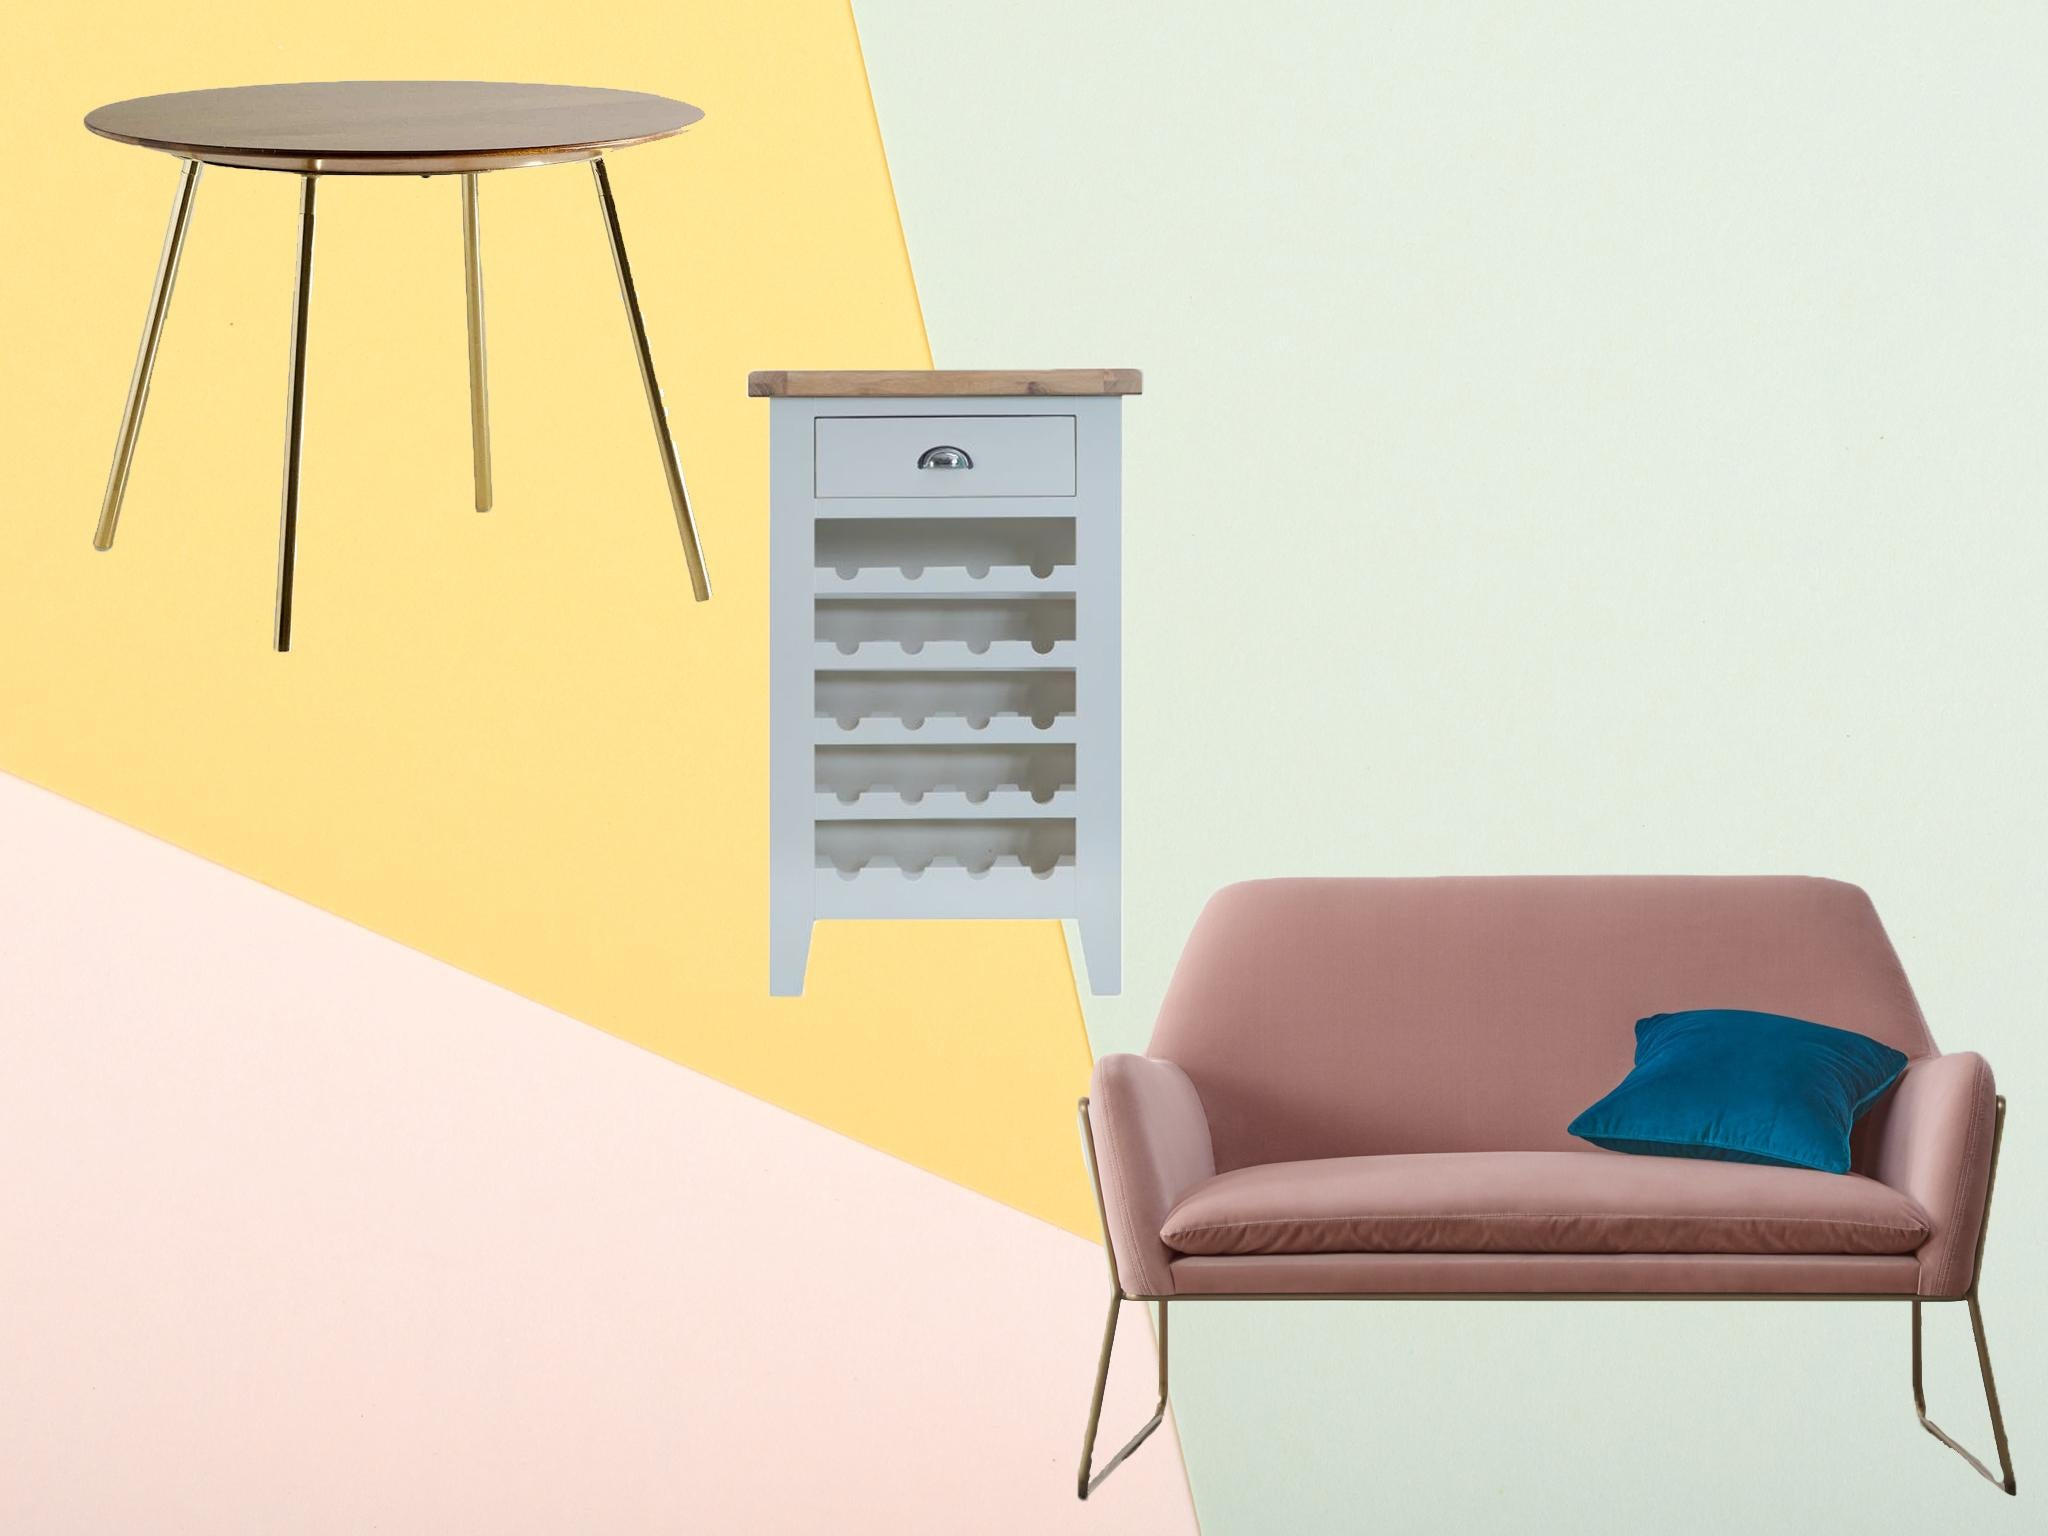 Summer furniture sales 2020: Best homeware deals from John Lewis, H&M, Zara Home and more